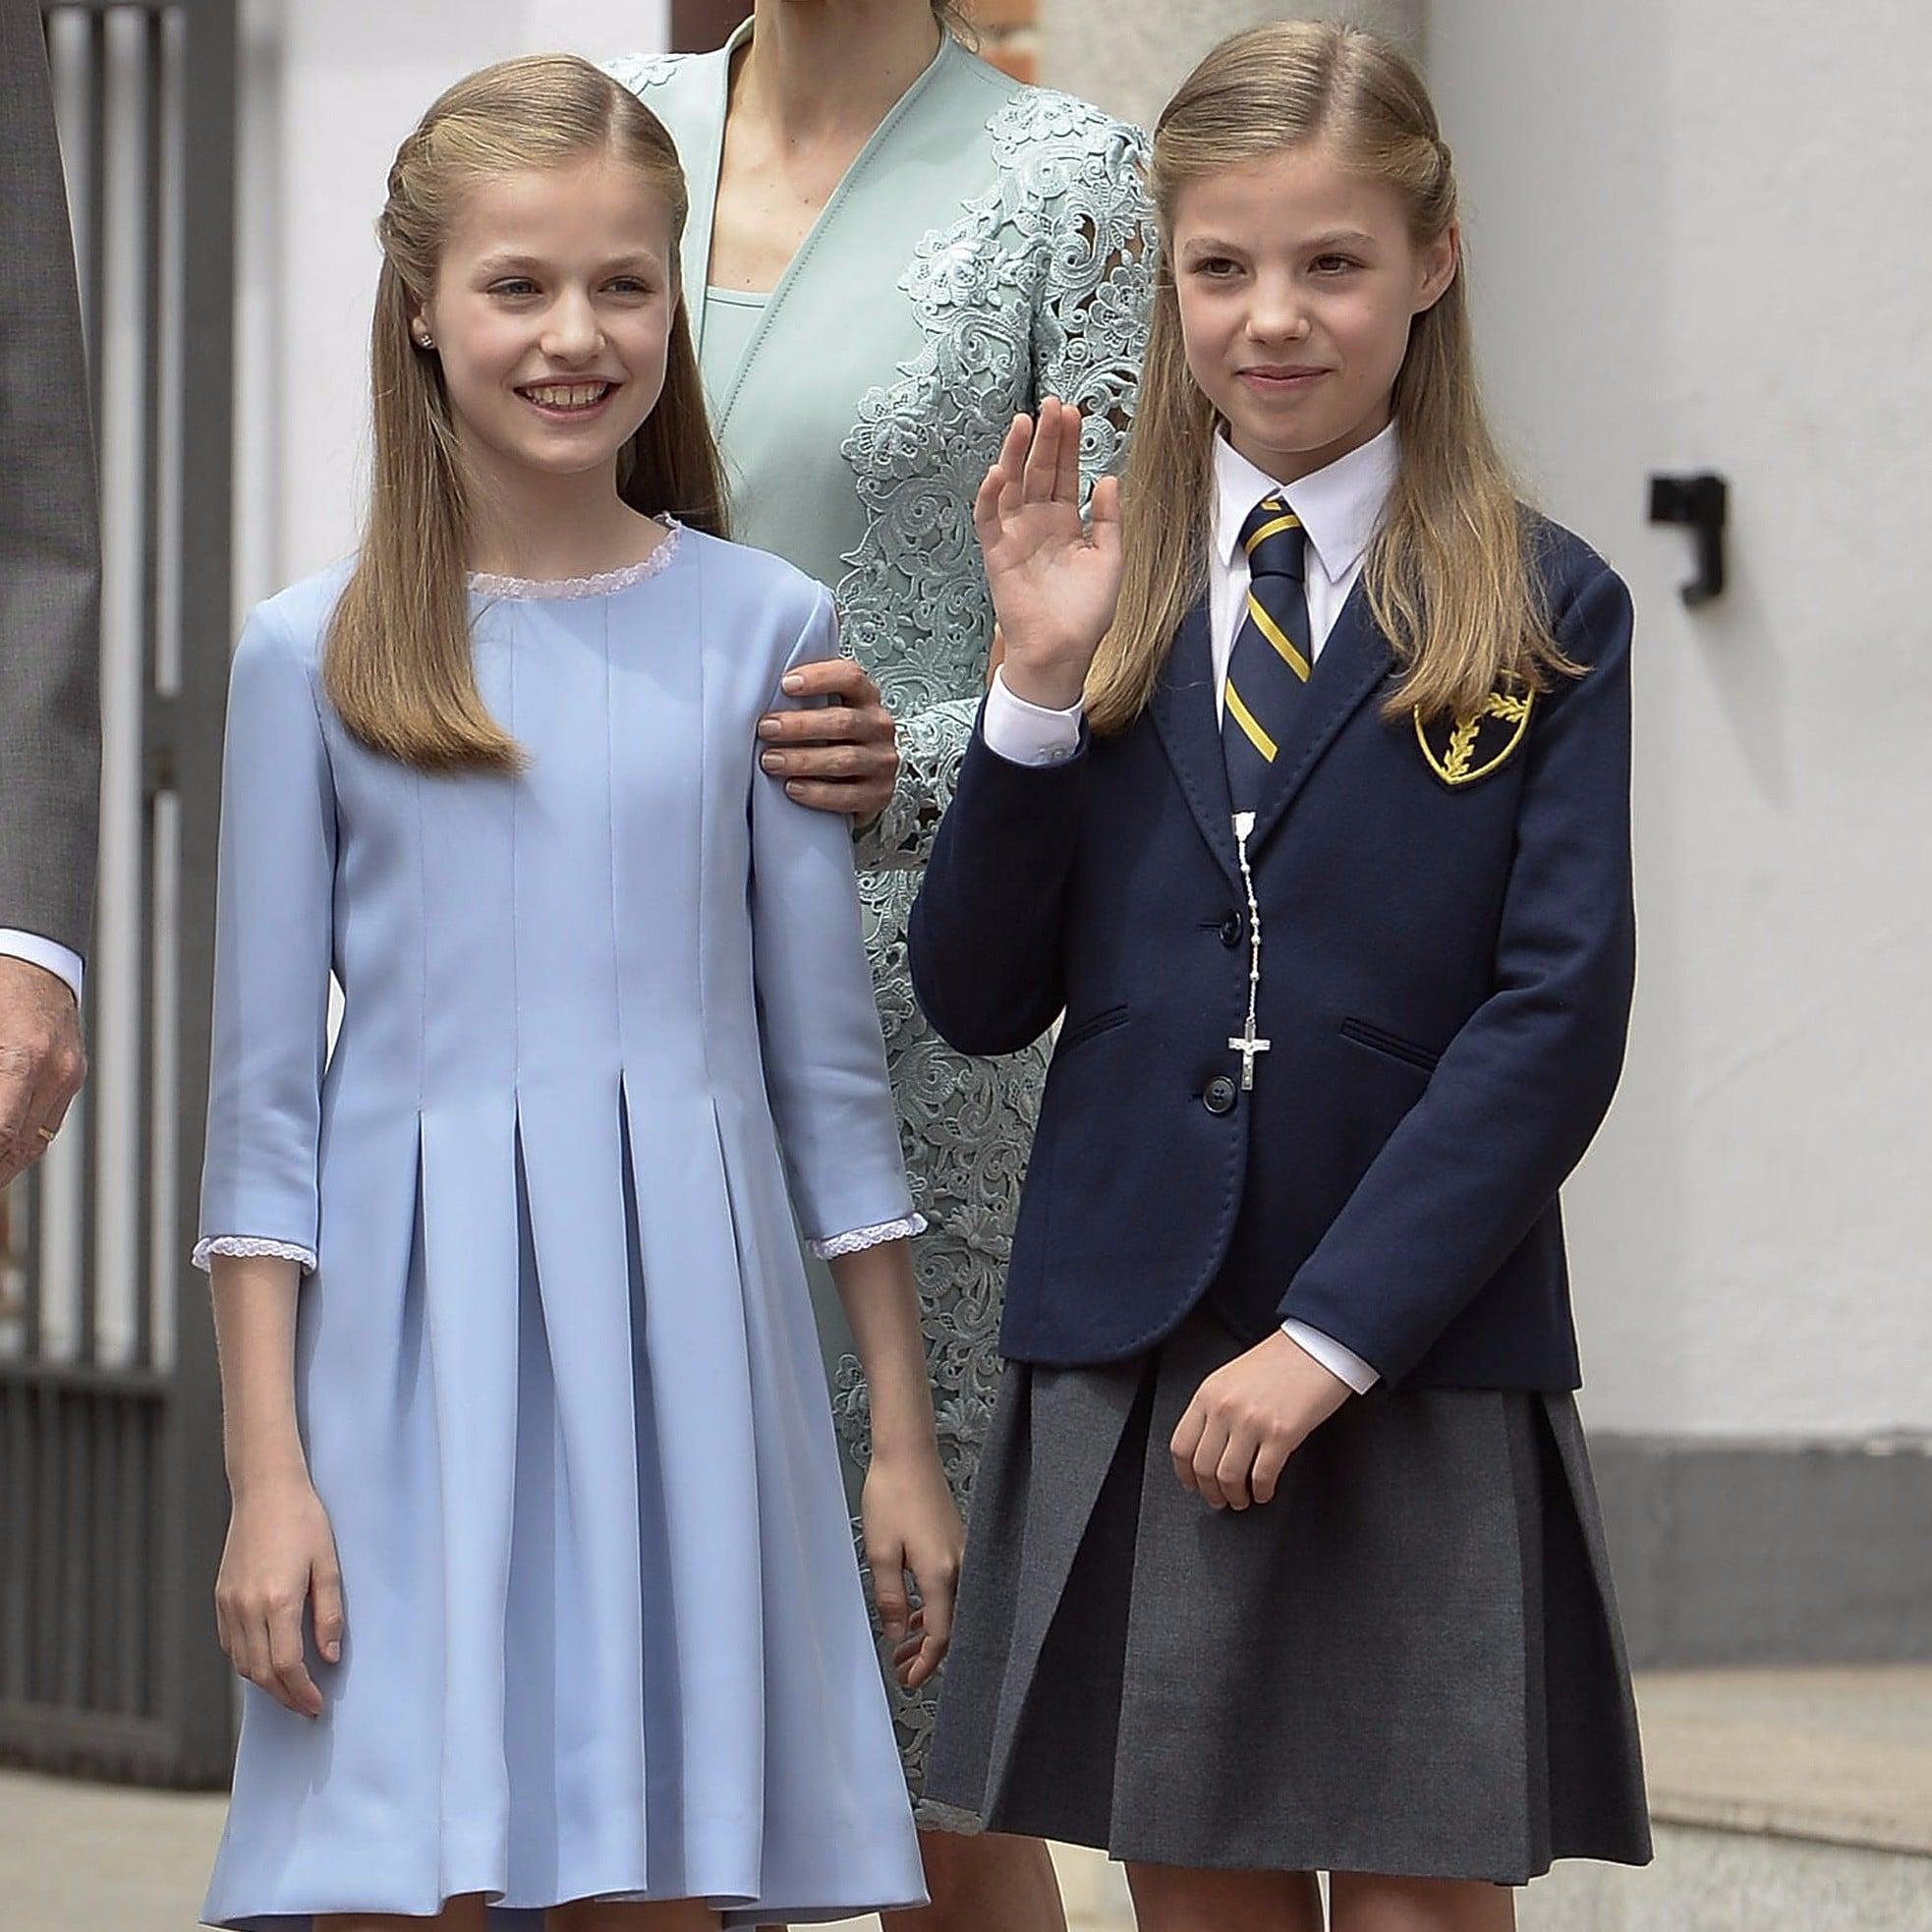 a15c5cd0b192 Princess Leonor and Infanta Sofia of Spain Through the Years ...